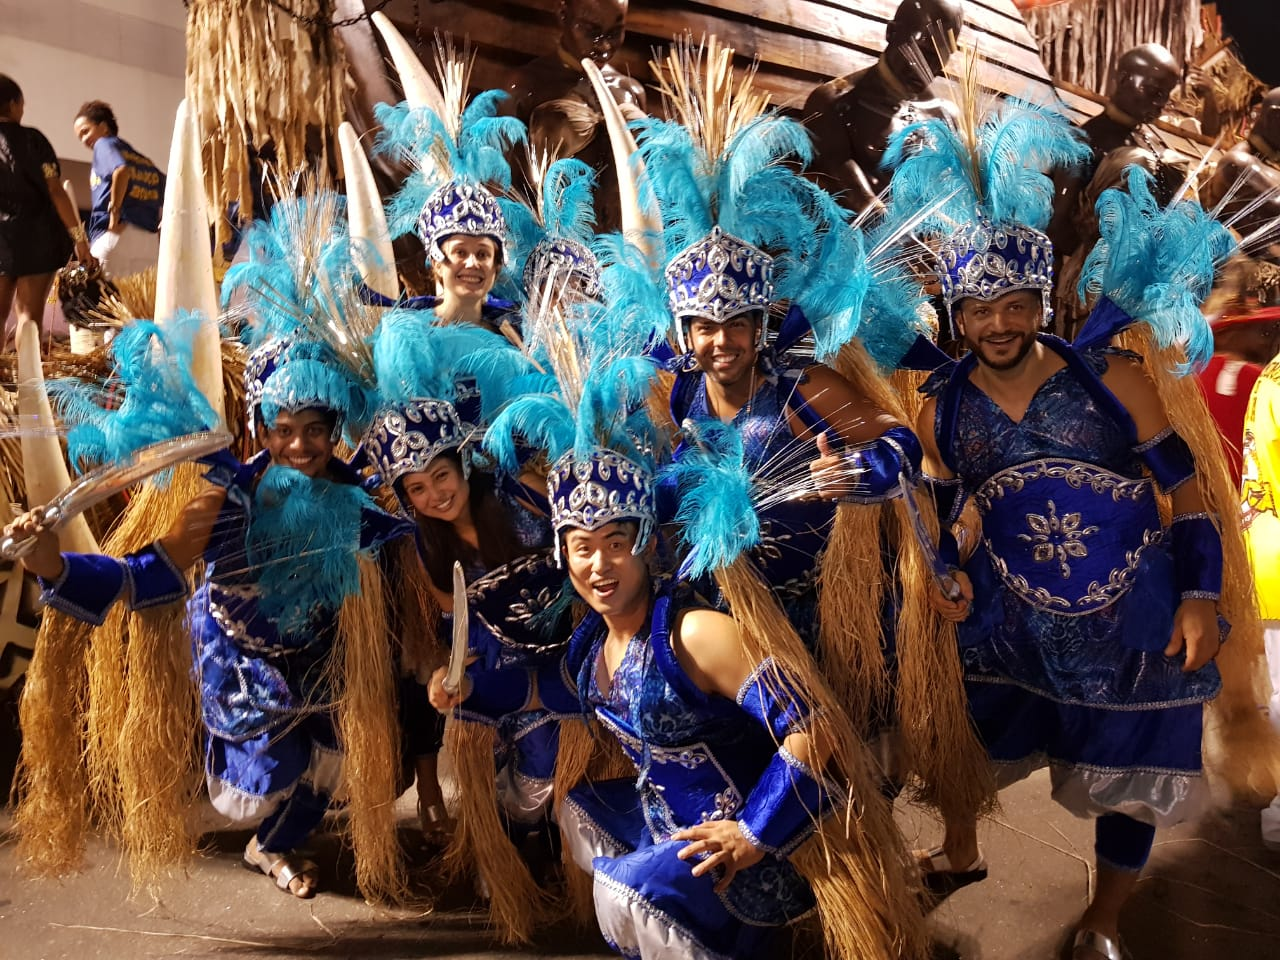 Parede in Rio de Janeiro Carnival. Group of foreign people getting ready to be part of the Rio Carnival Parade 2019 for Unidos da Tijuca Samba School, wearing blue costumes that represent the African Orisá Ogum.